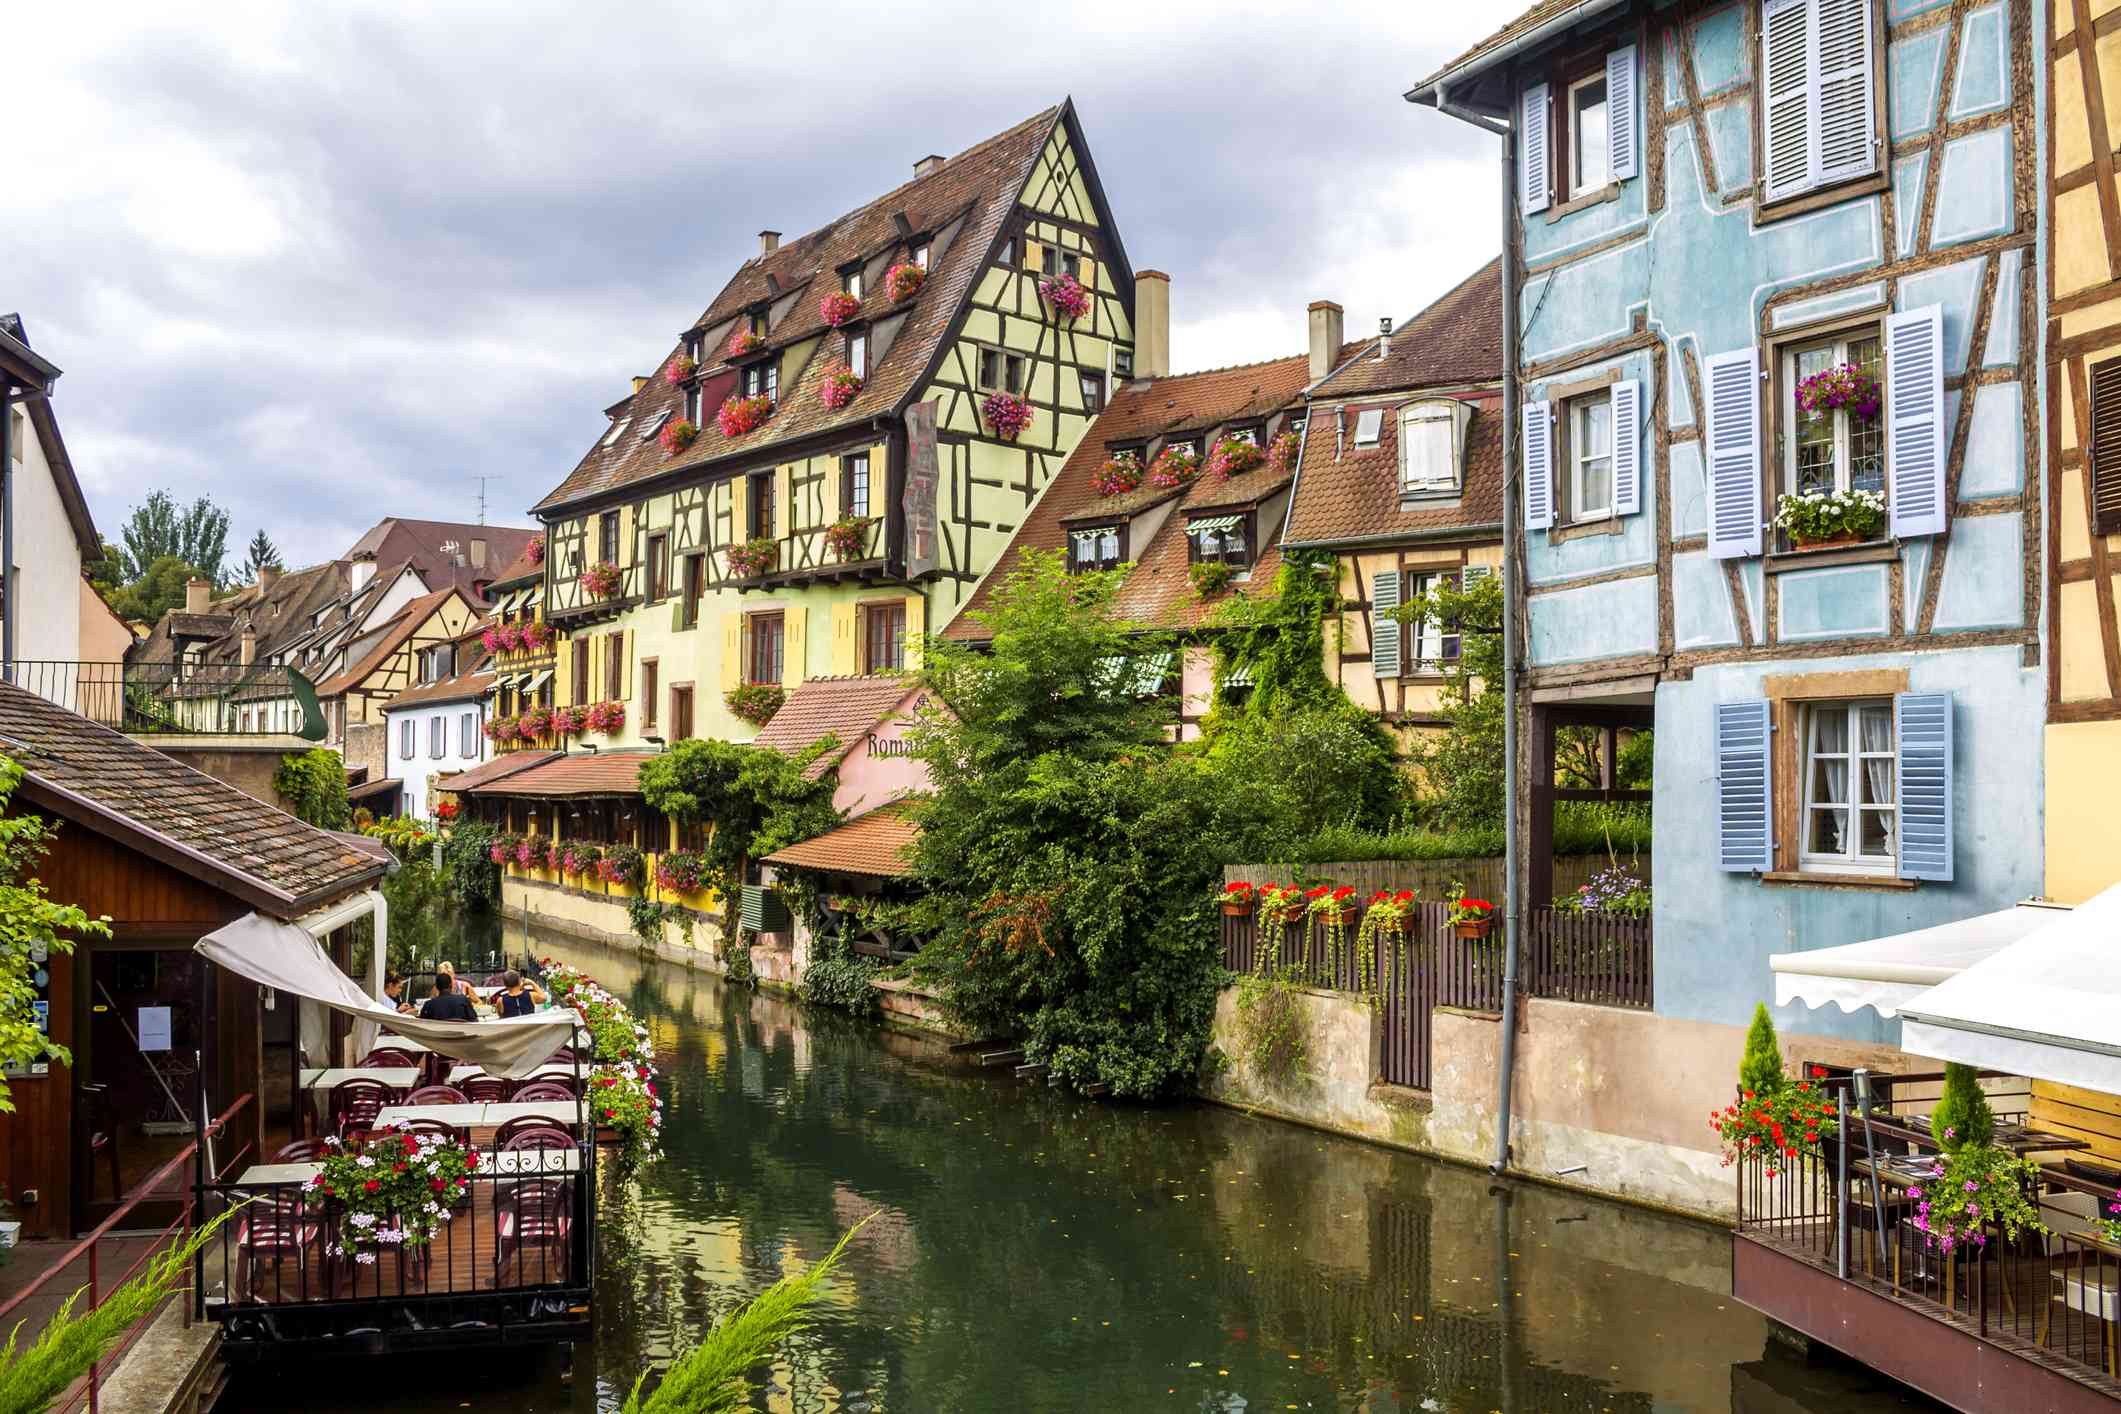 Half-timbered houses in Colmar, France, in the heart of Alsace.